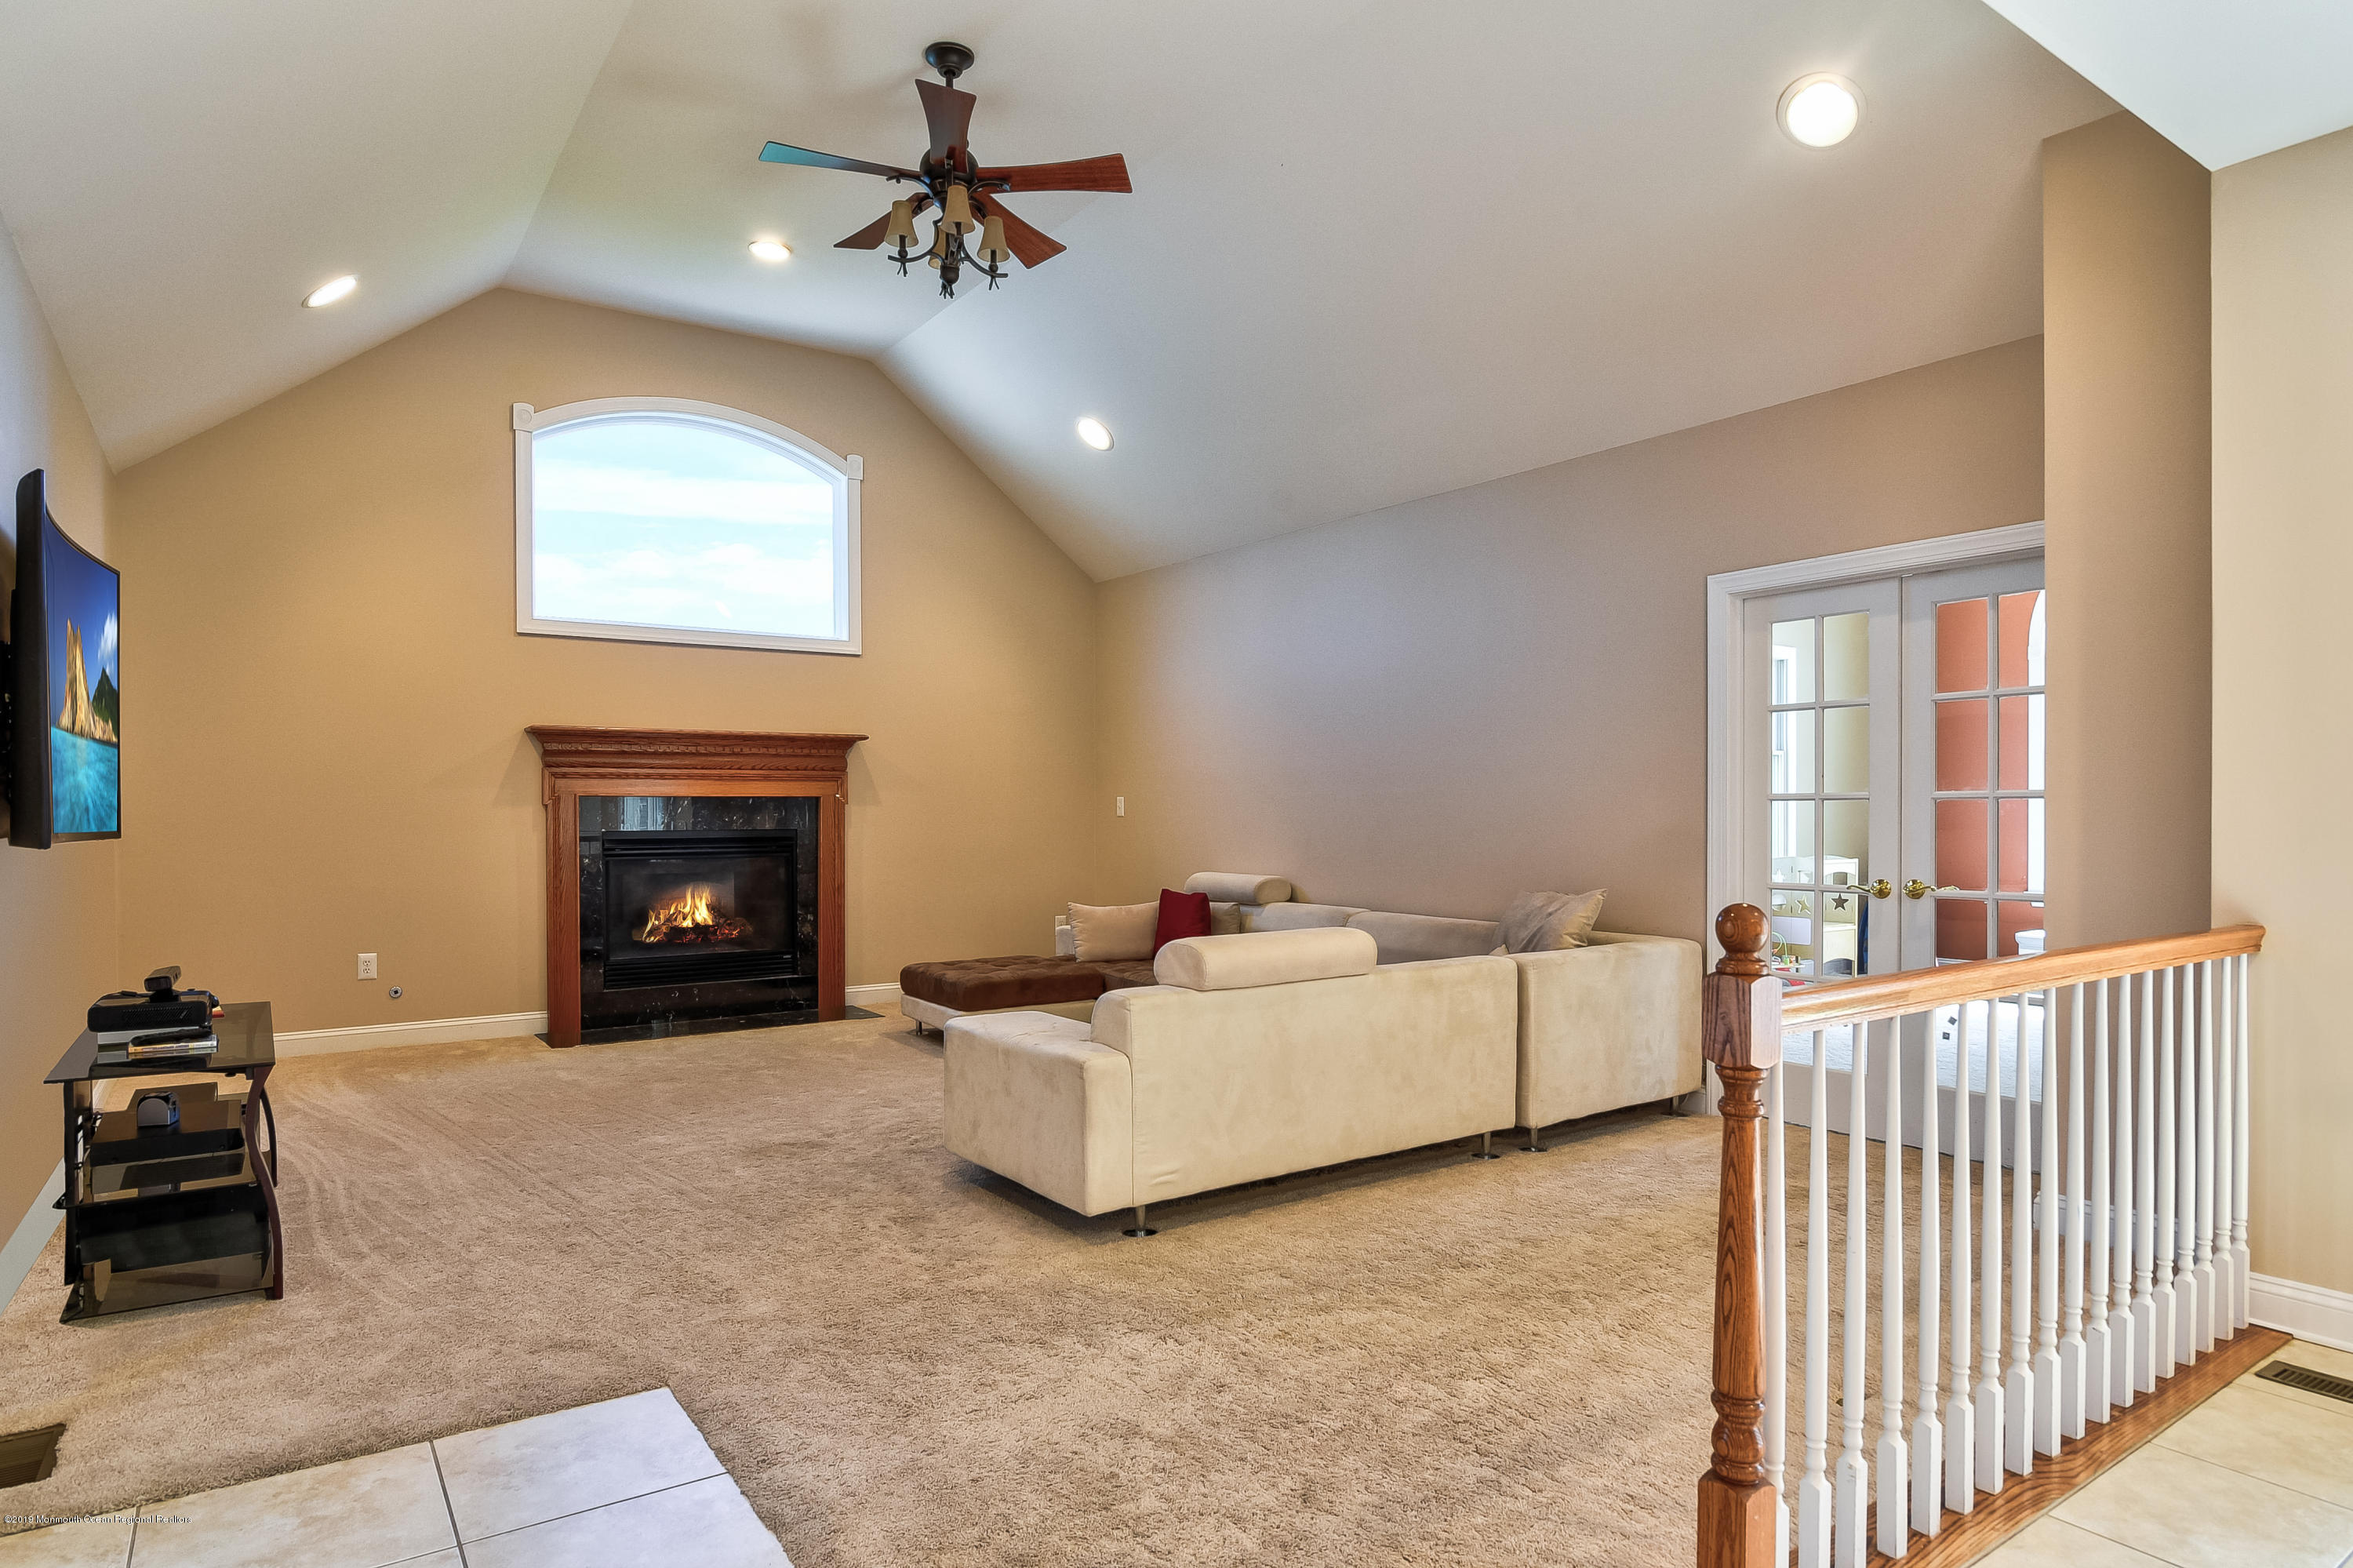 24 Linwood Dr Family Room-2